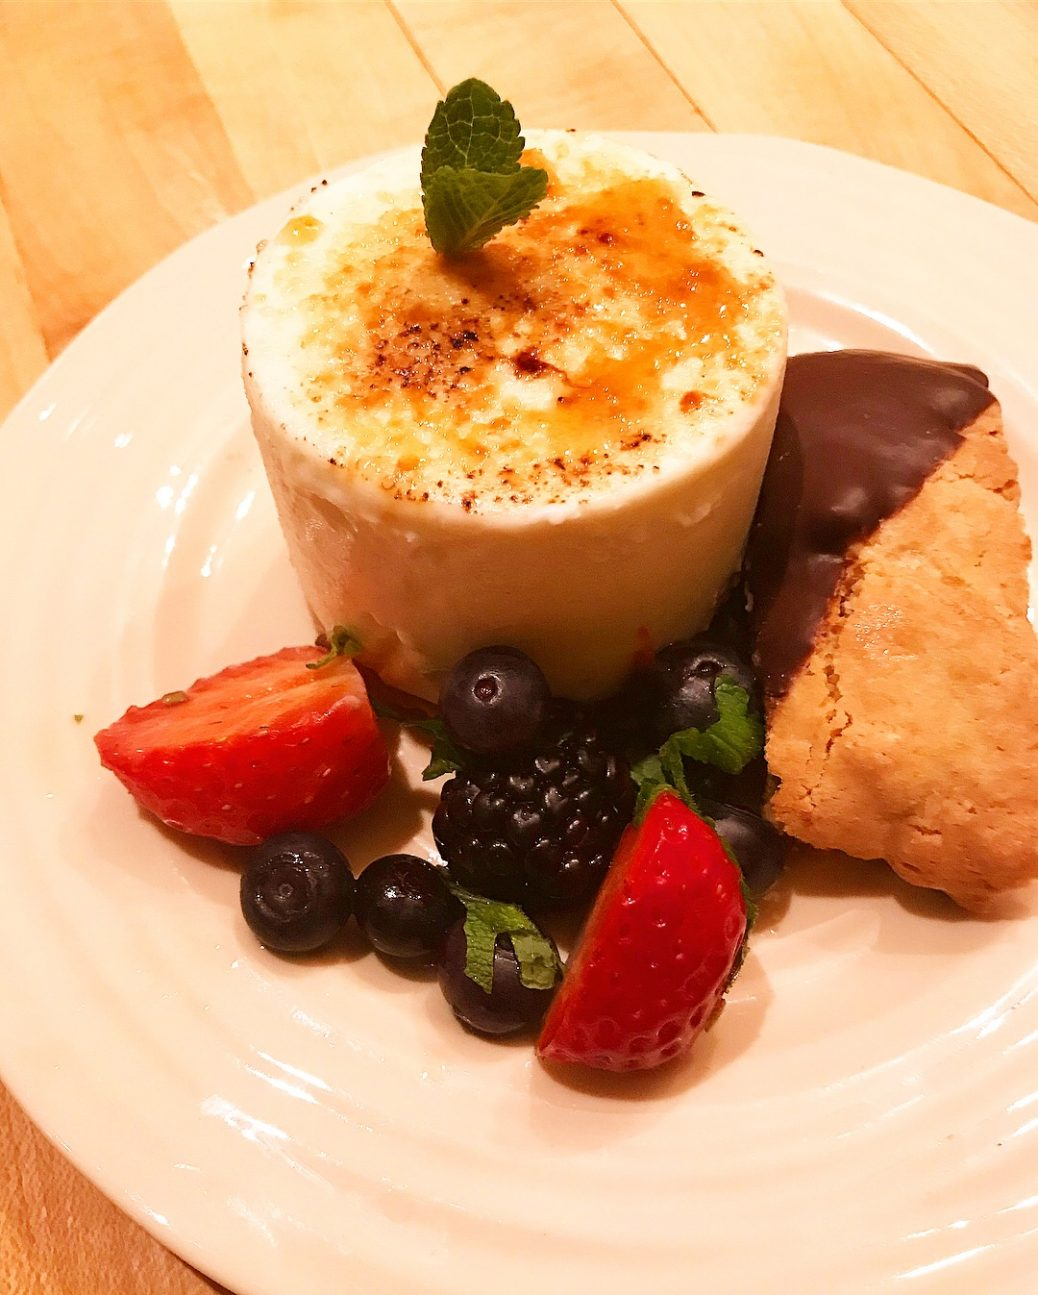 Creme brûlée cheesecake, traditional biscotti, half dipped chocolate and wine and mint marinated mixed berries